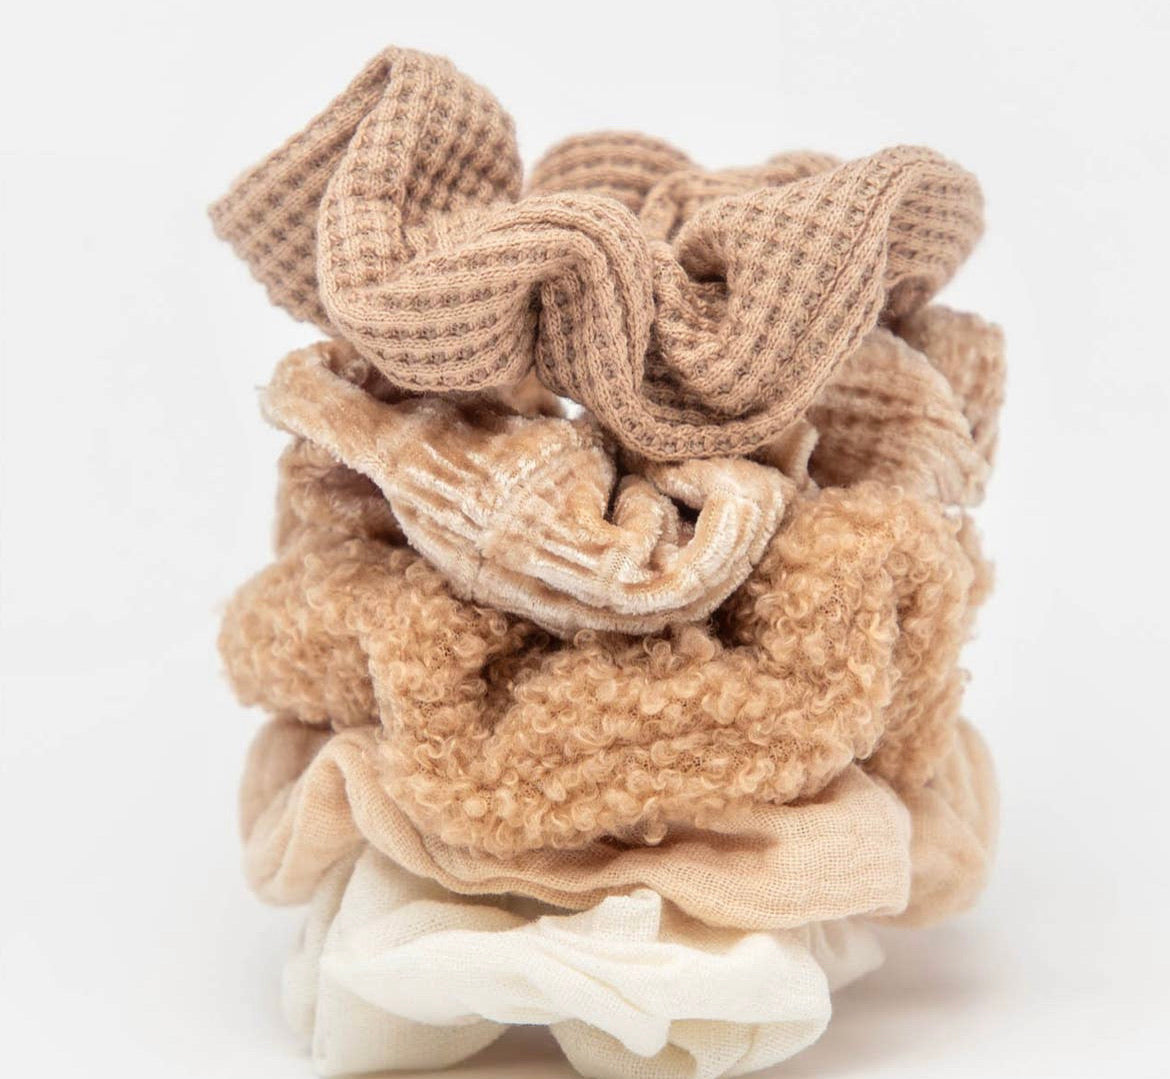 Assorted Textured Scrunchies - 5 piece - Sand